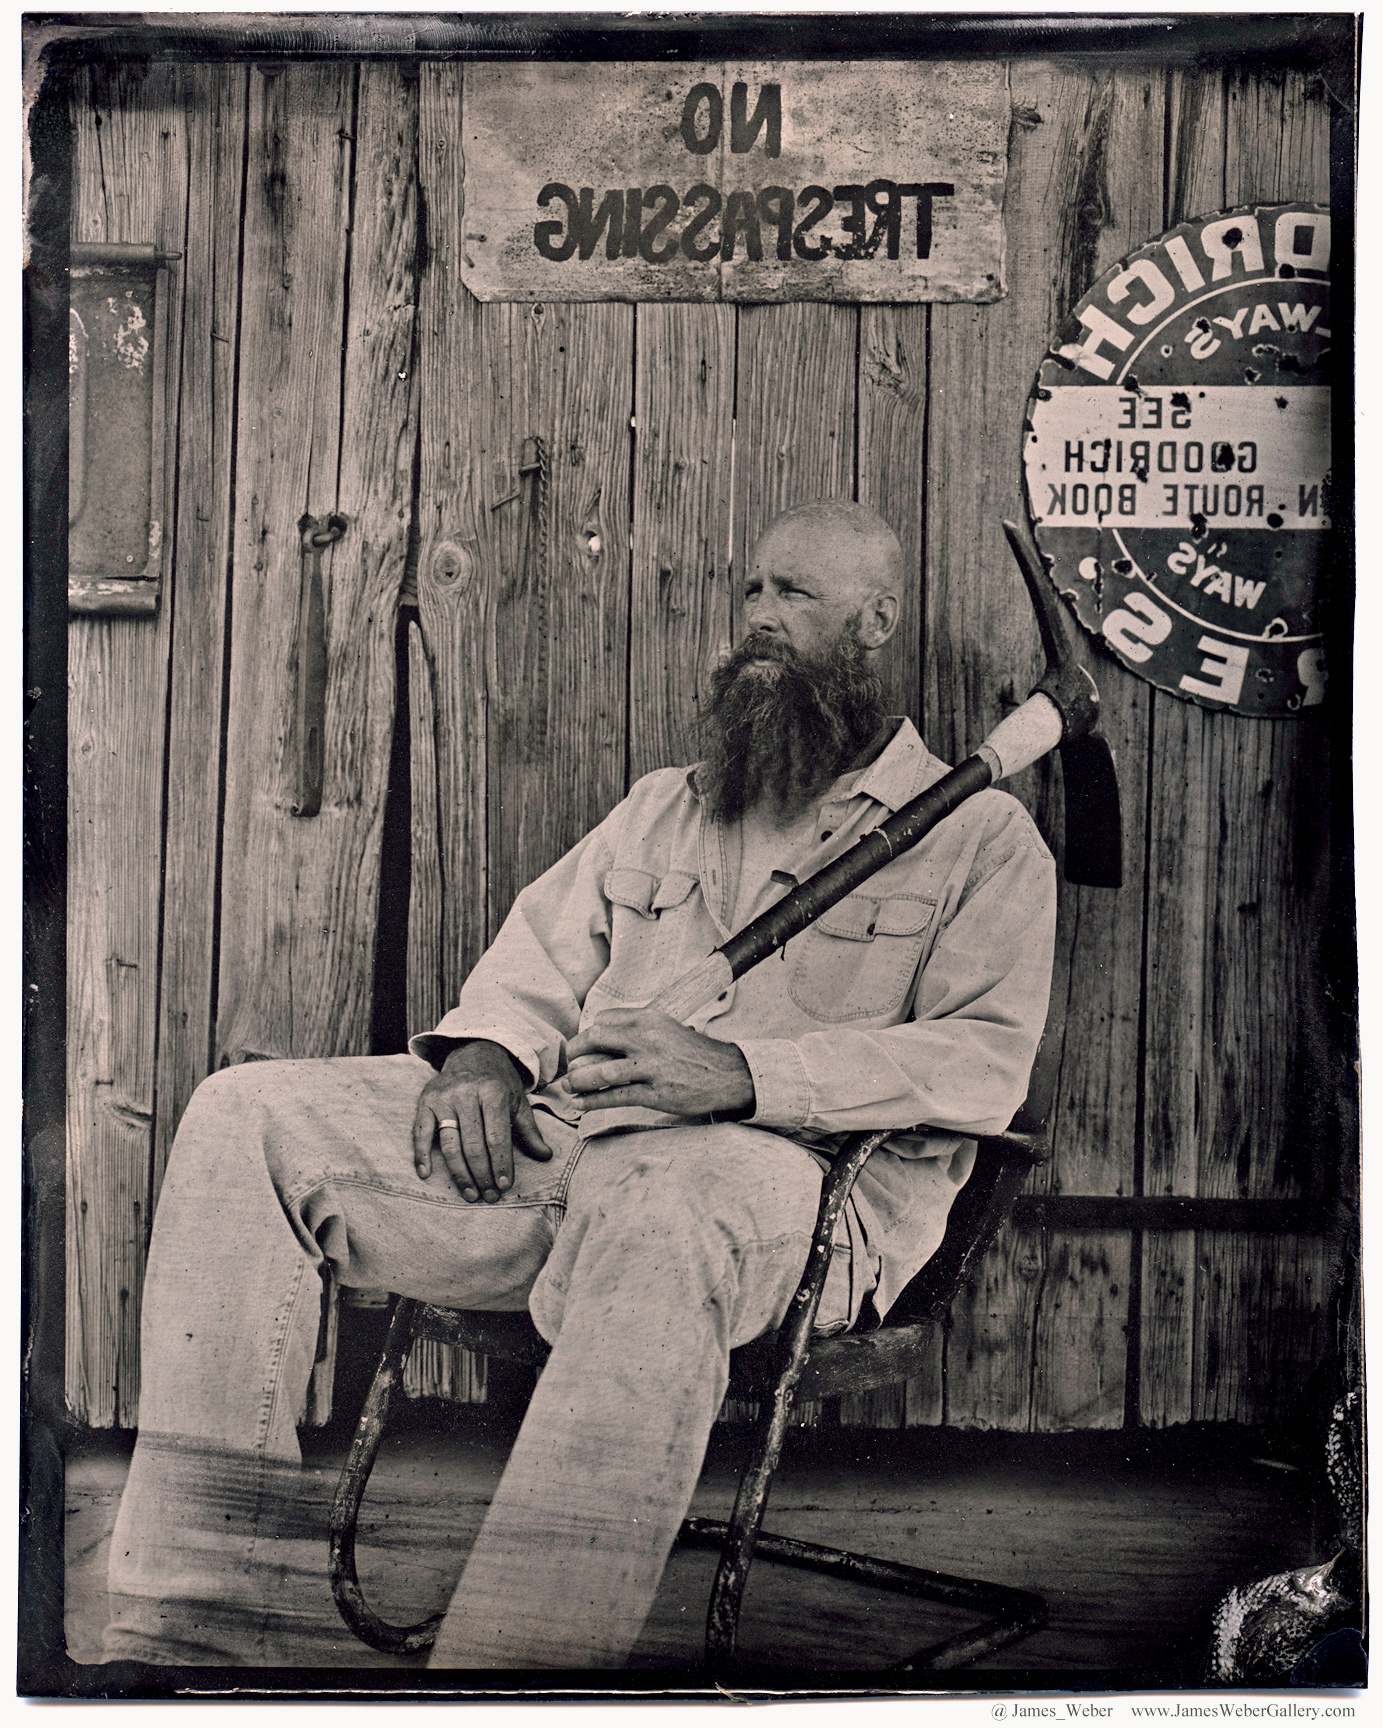 JAMES-WEBER-PHOTOGRAPHER-WET-PLATE-2014-00469.jpg